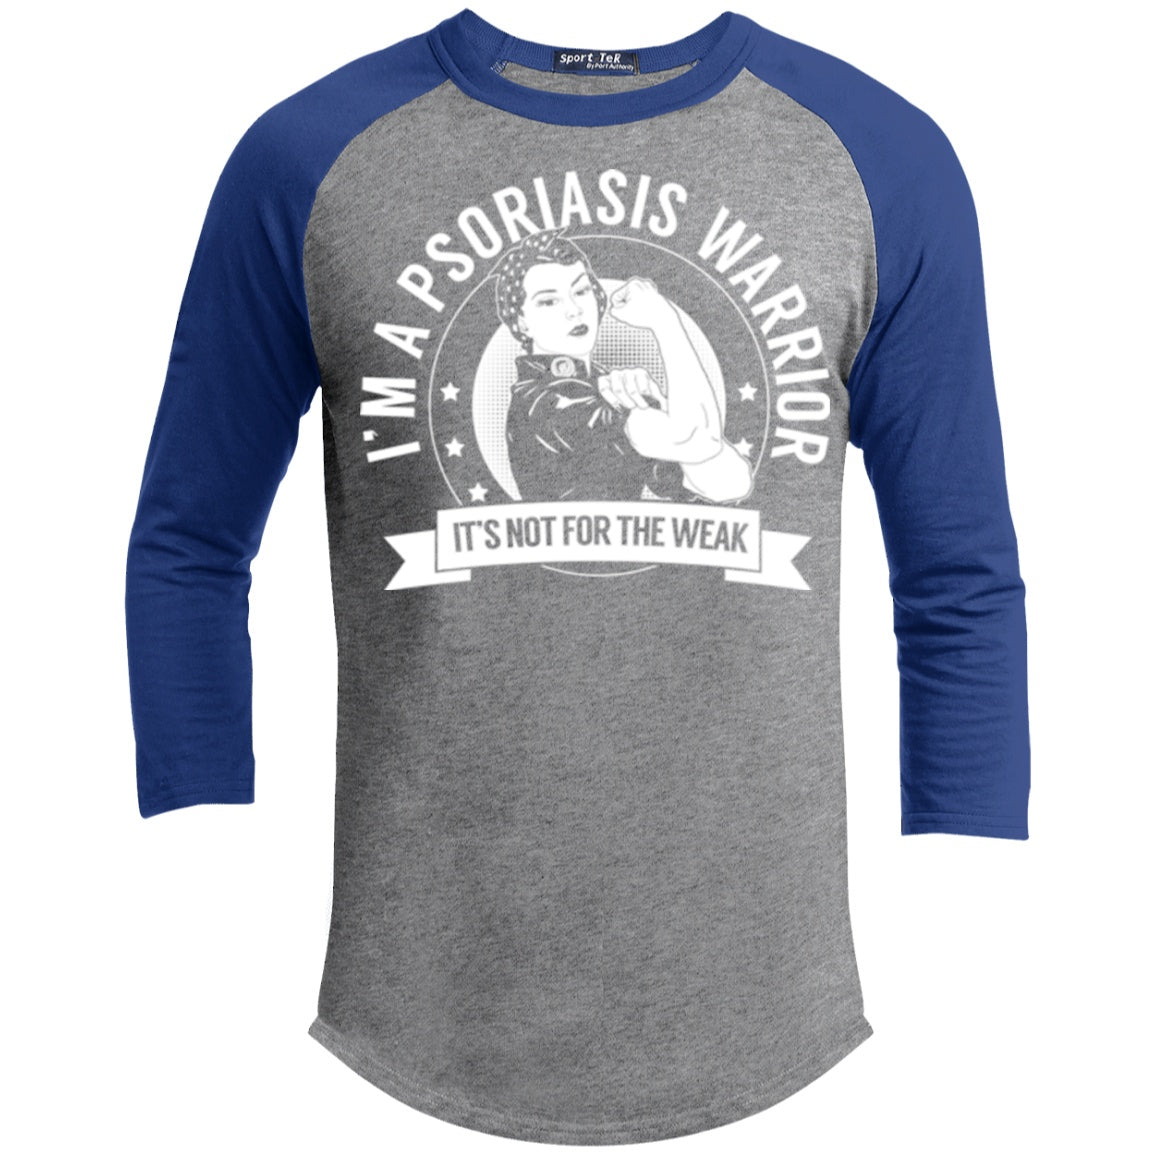 T-Shirts - Psoriasis Warrior Not For The Weak Baseball Shirt